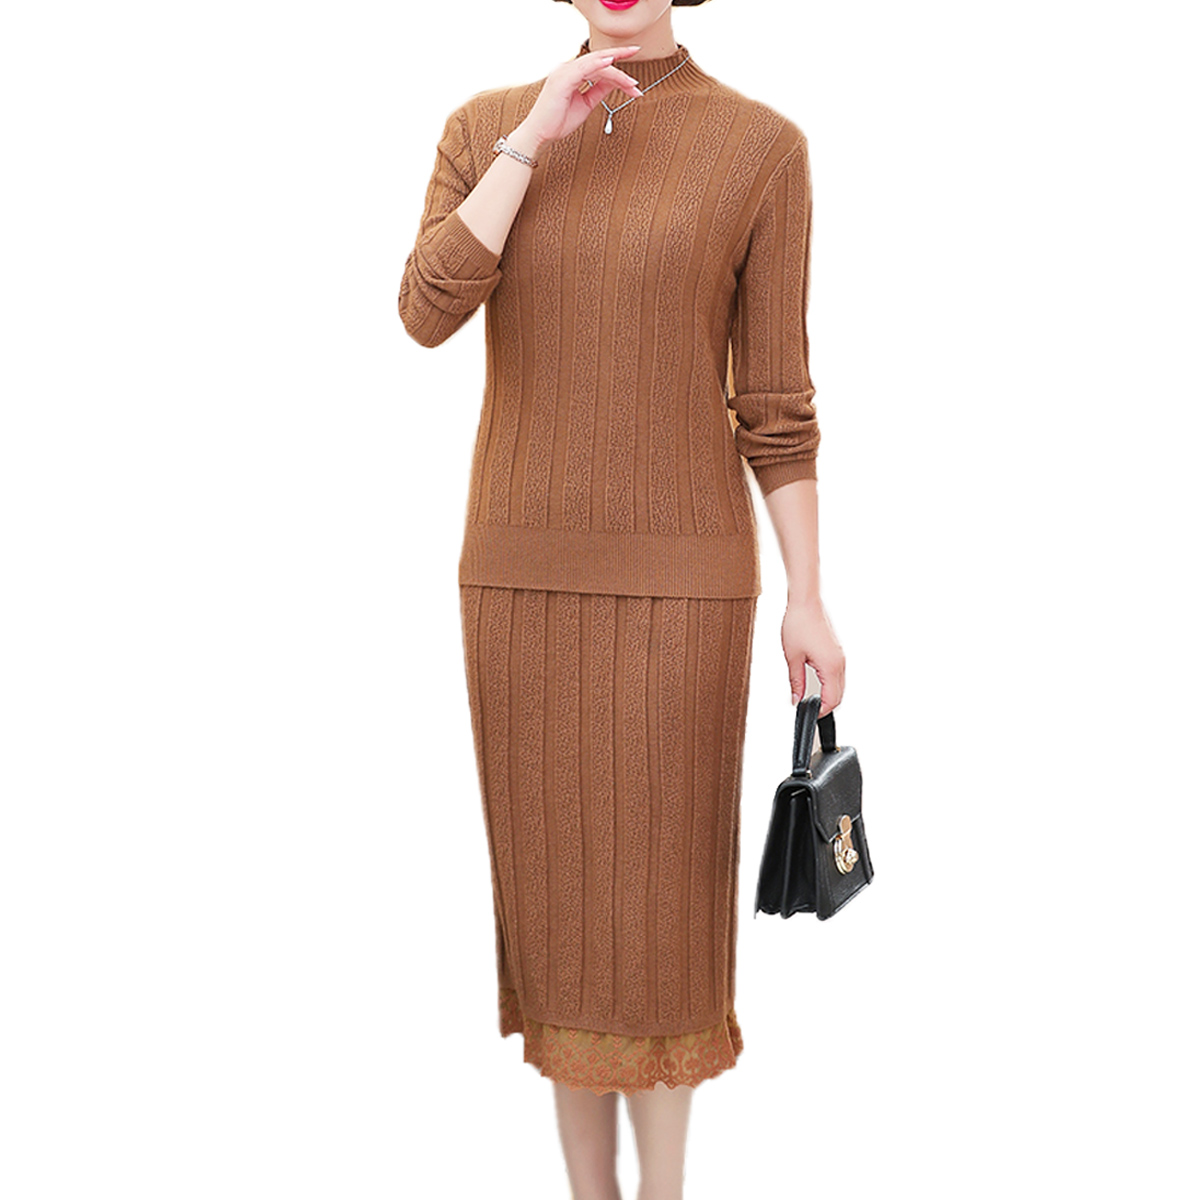 SET 2 Pieces Sweater Dresses Women 2018 Winter Lace Elegant Ladies Knitwear Knitted Dresses Tunic Robe Femme Lady Long Pullovers